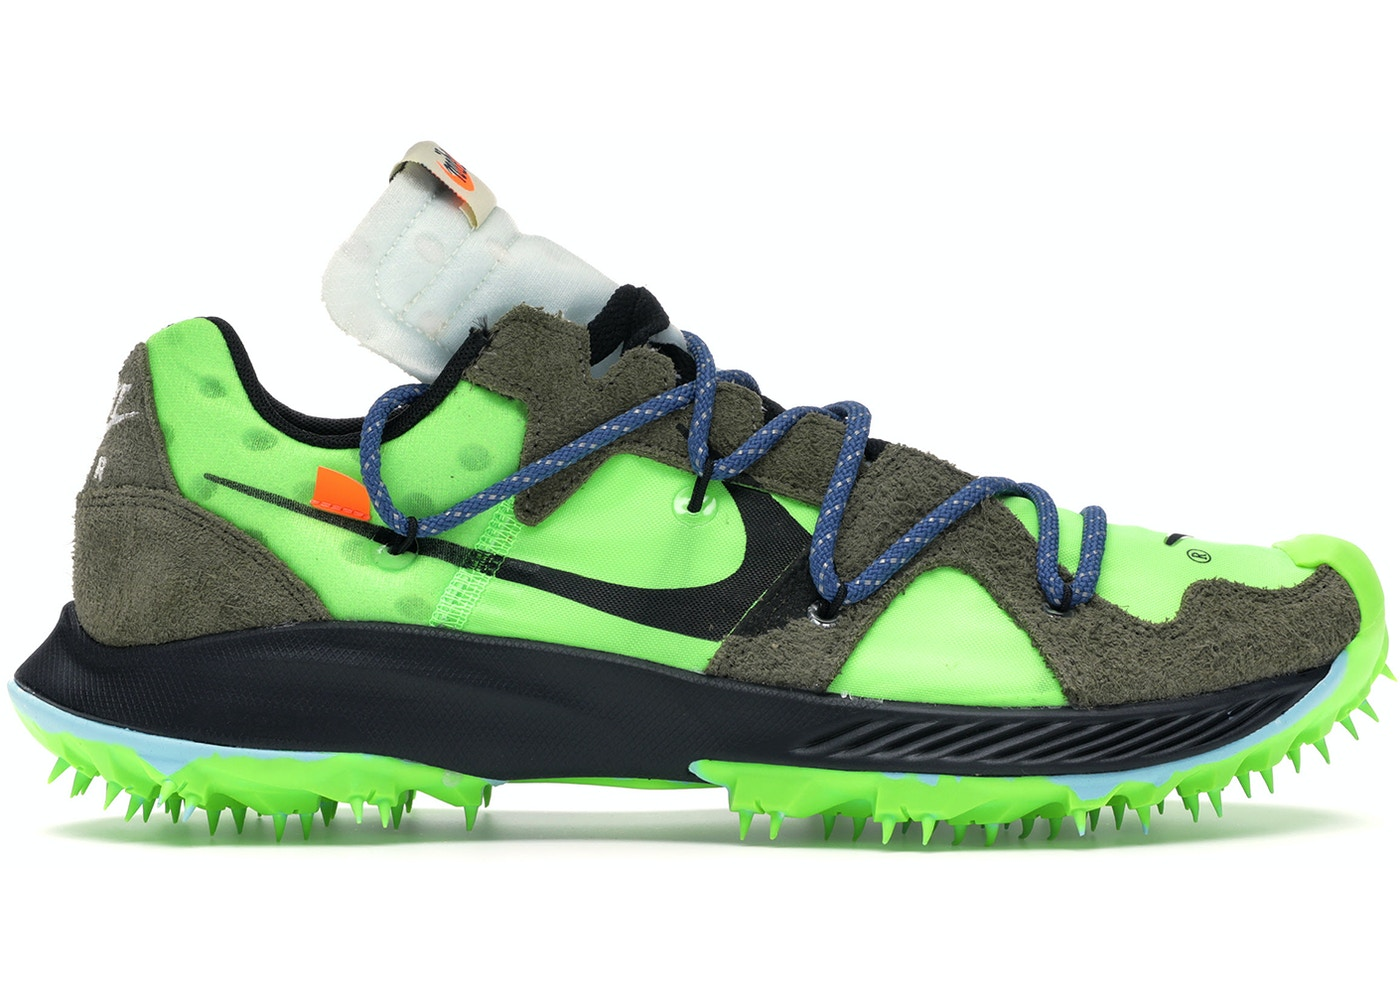 premium selection new styles available Nike Zoom Terra Kiger 5 OFF-WHITE Electric Green (W) - CD8179-300